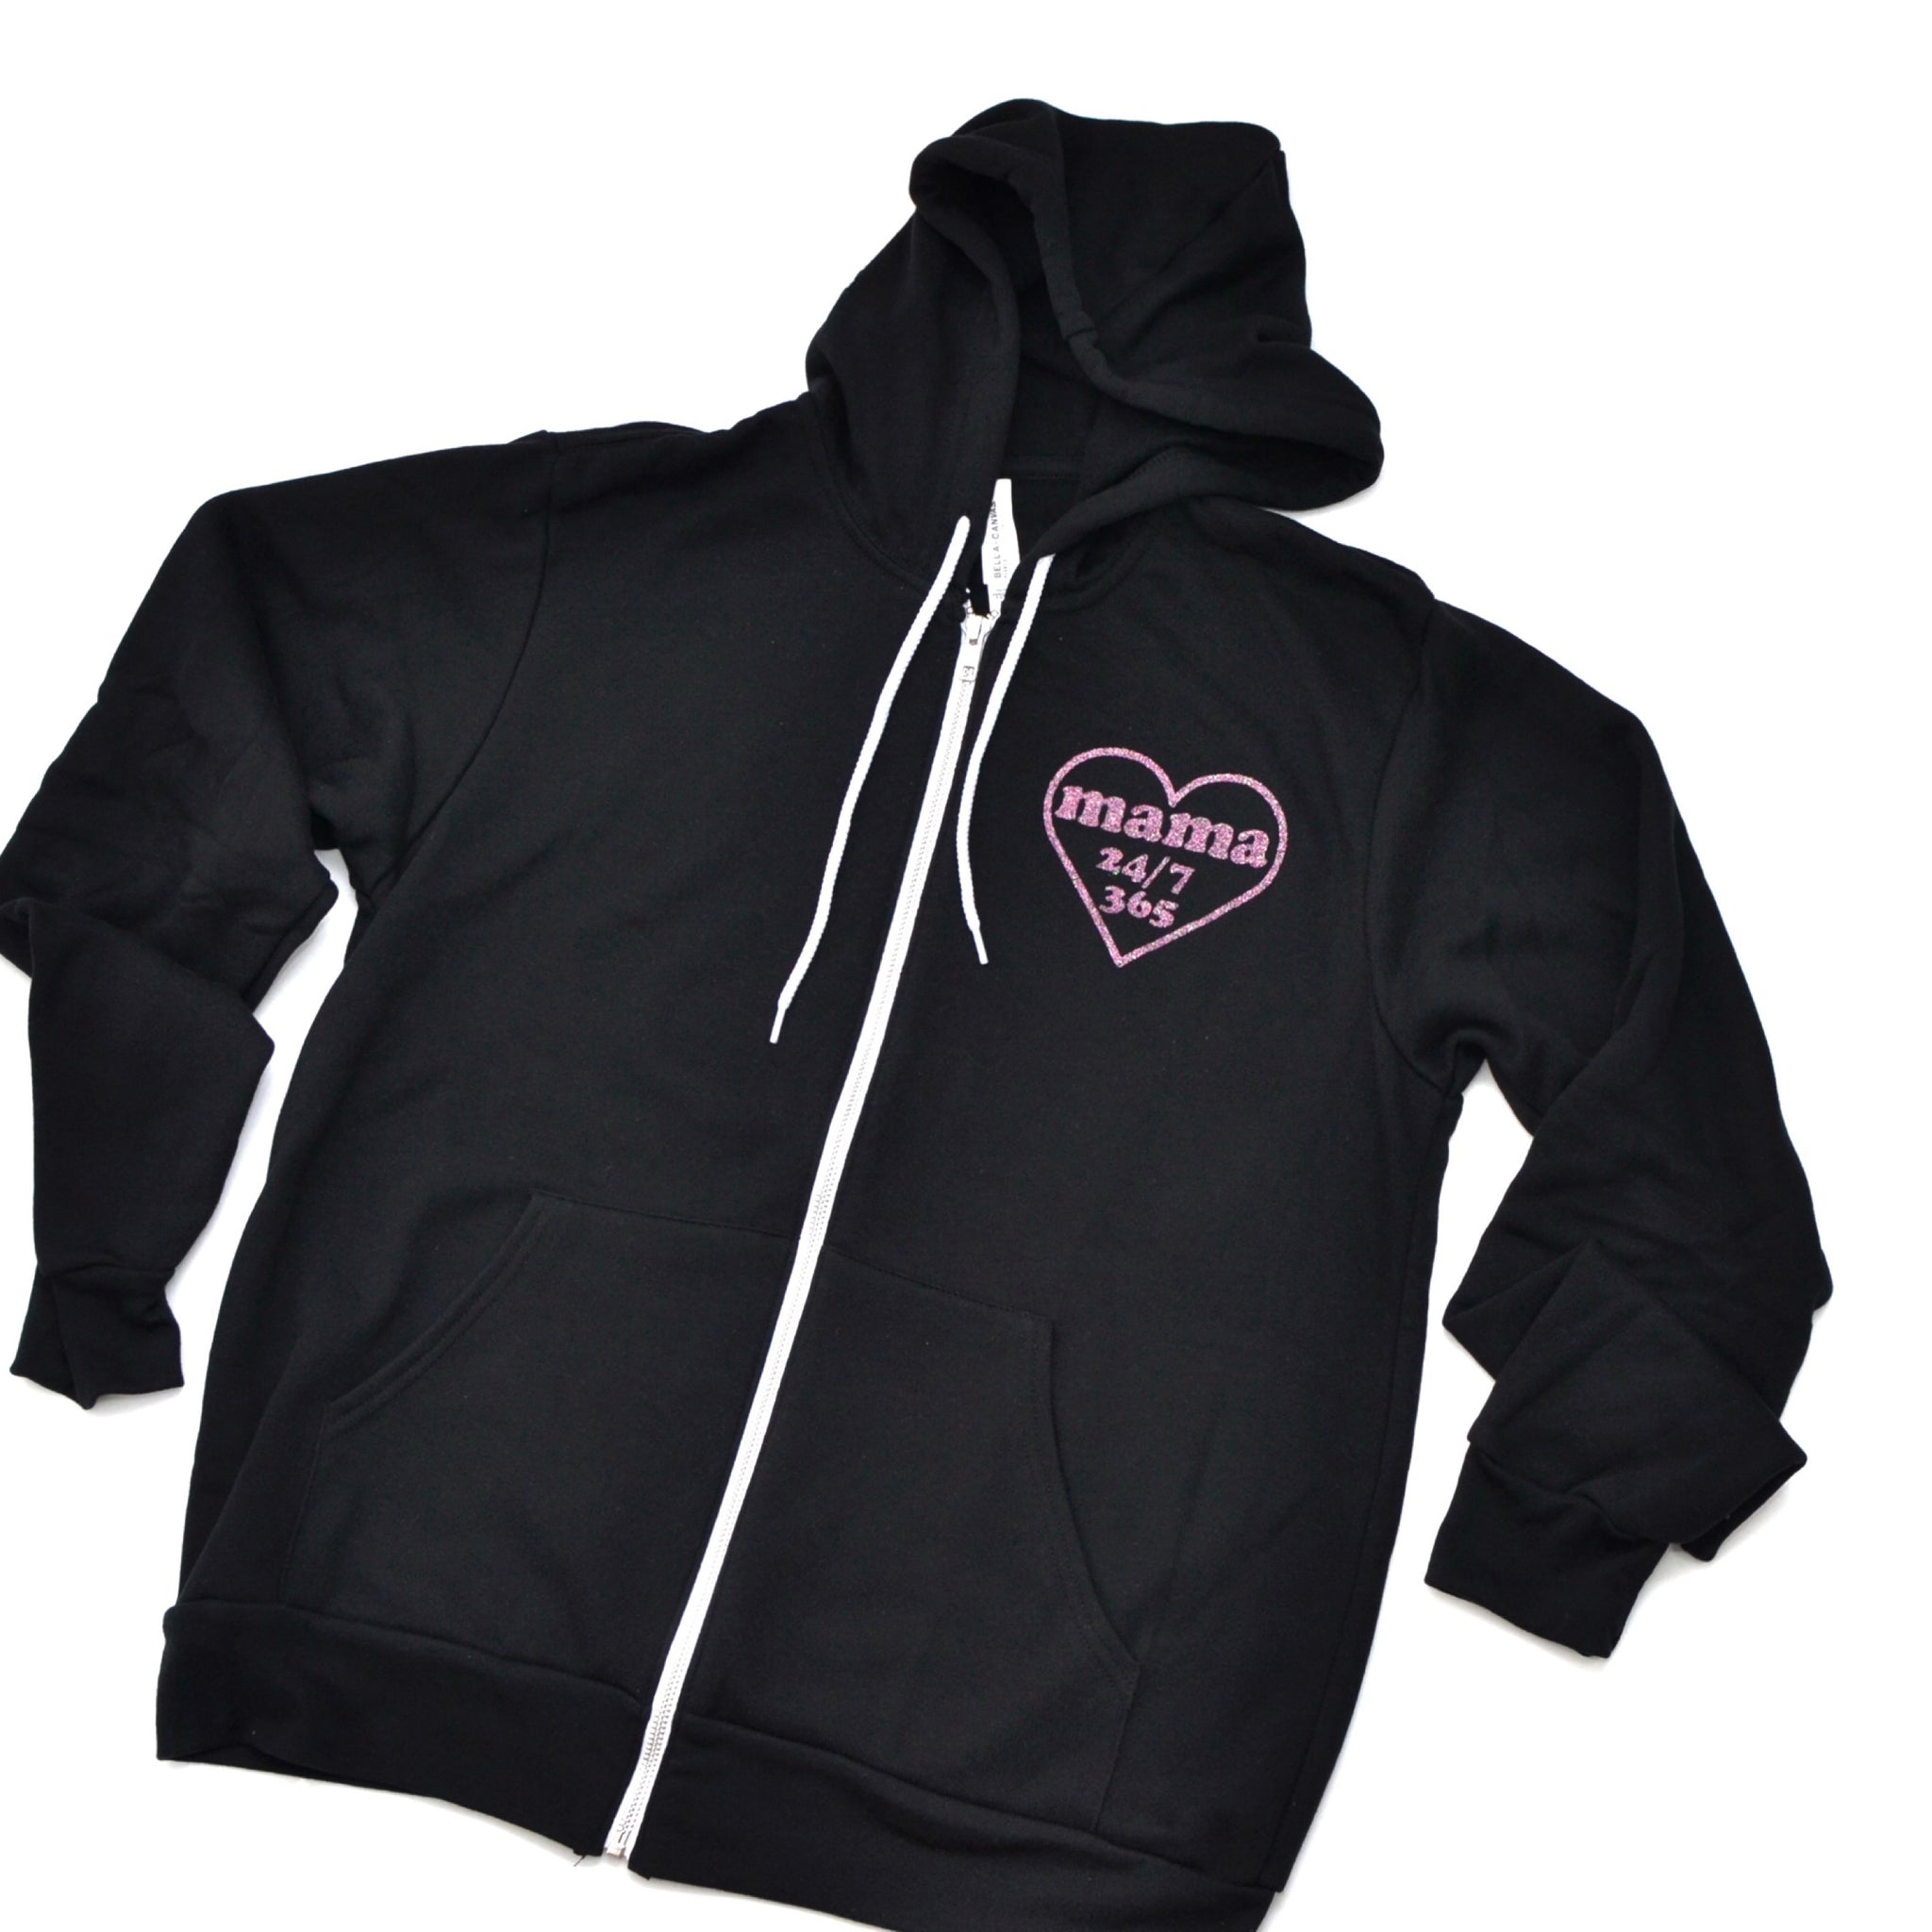 PREORDER Mama 24/7 Zip Up [Black]